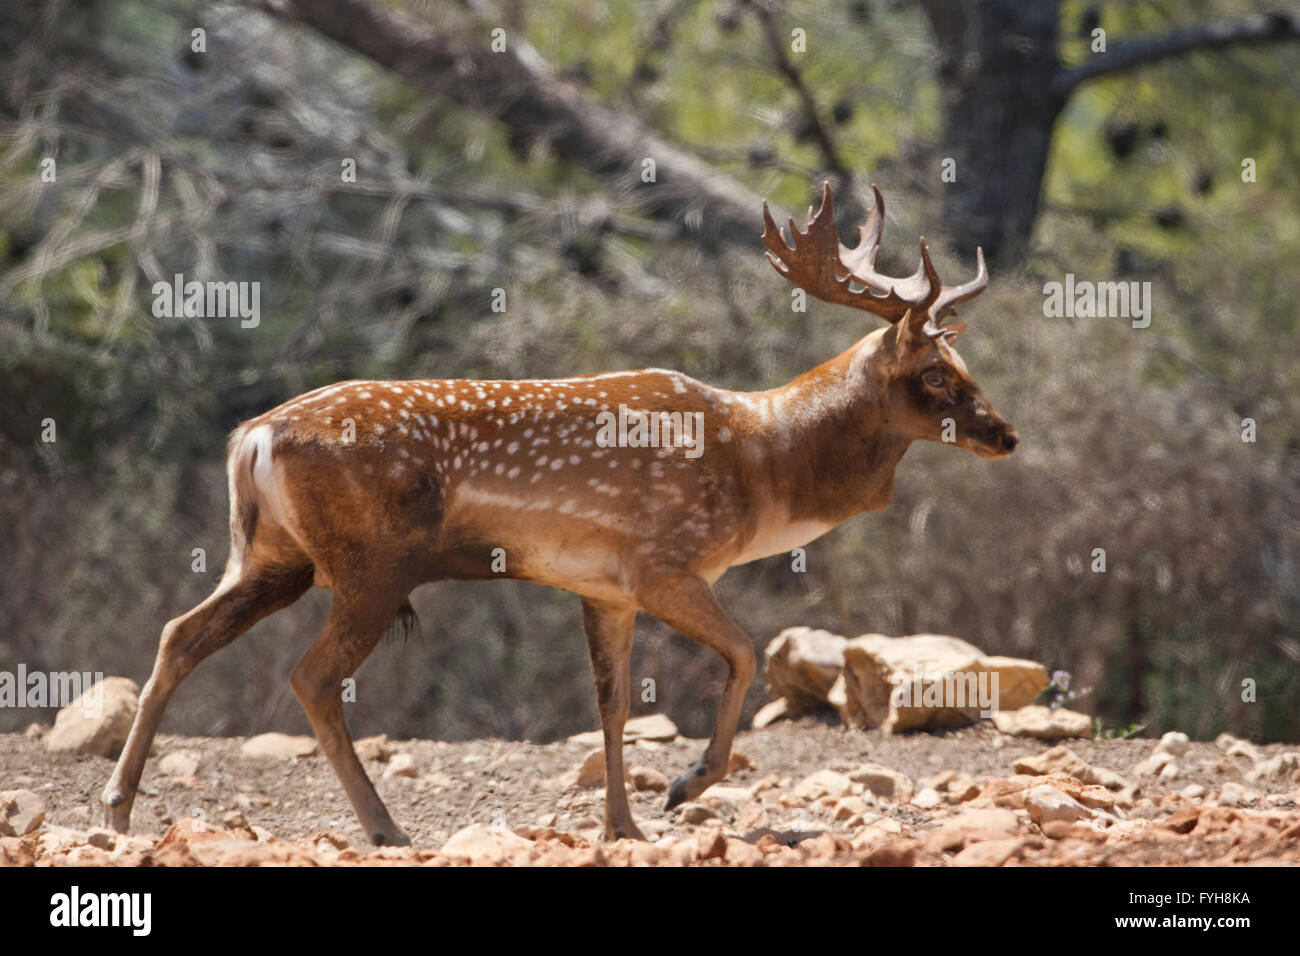 Male Mesopotamian Fallow deer (Dama mesopotamica) Photographed in Israel Carmel forest in August - Stock Image